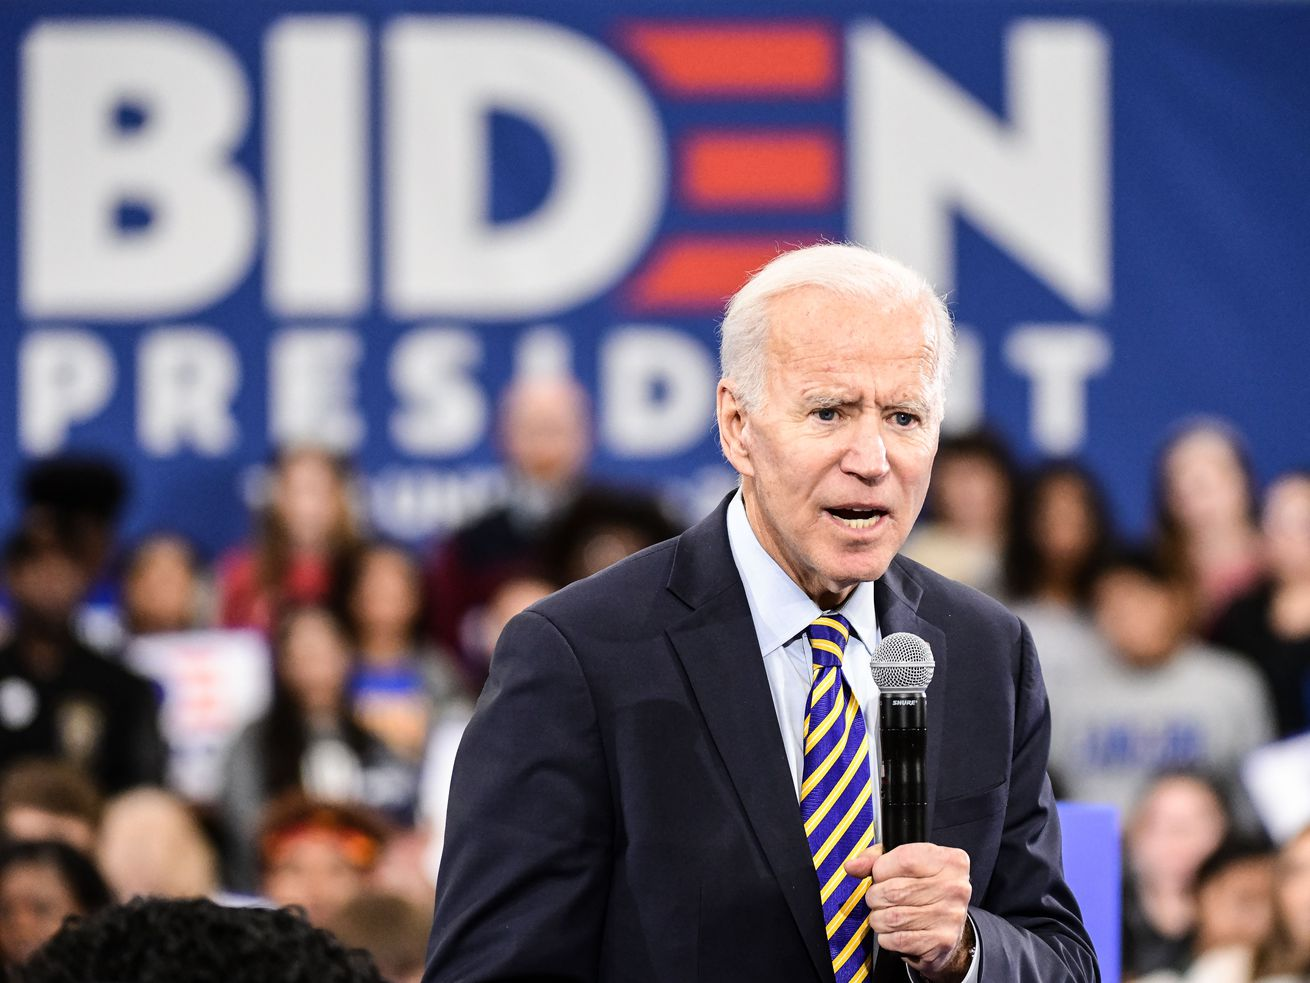 """Presidential candidate Joe Biden speaks onstage at a town hall with a """"Biden for president"""" sign in the background."""